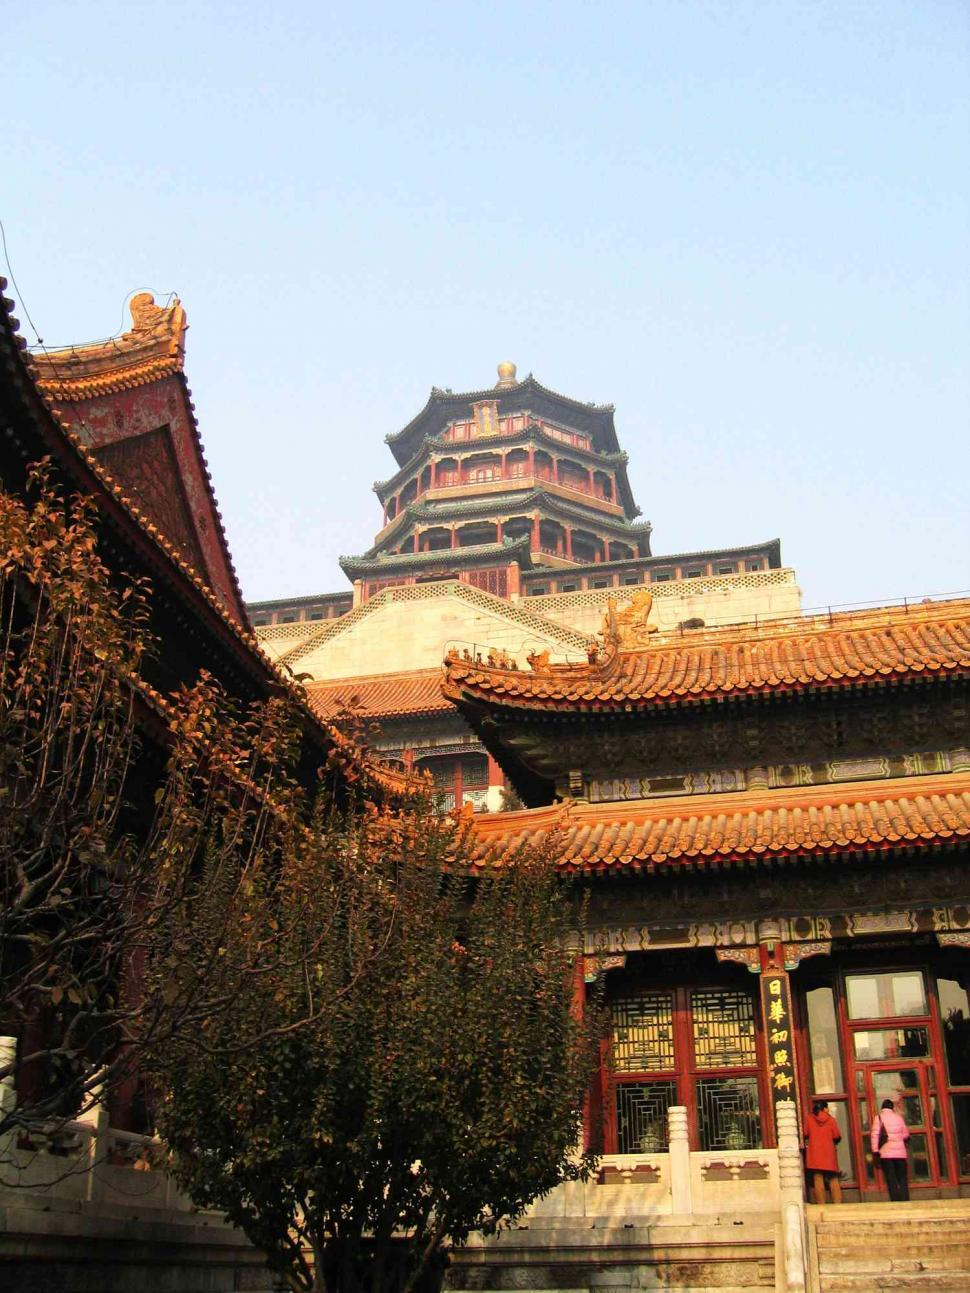 Download Free Stock HD Photo of Chinese architecture Online